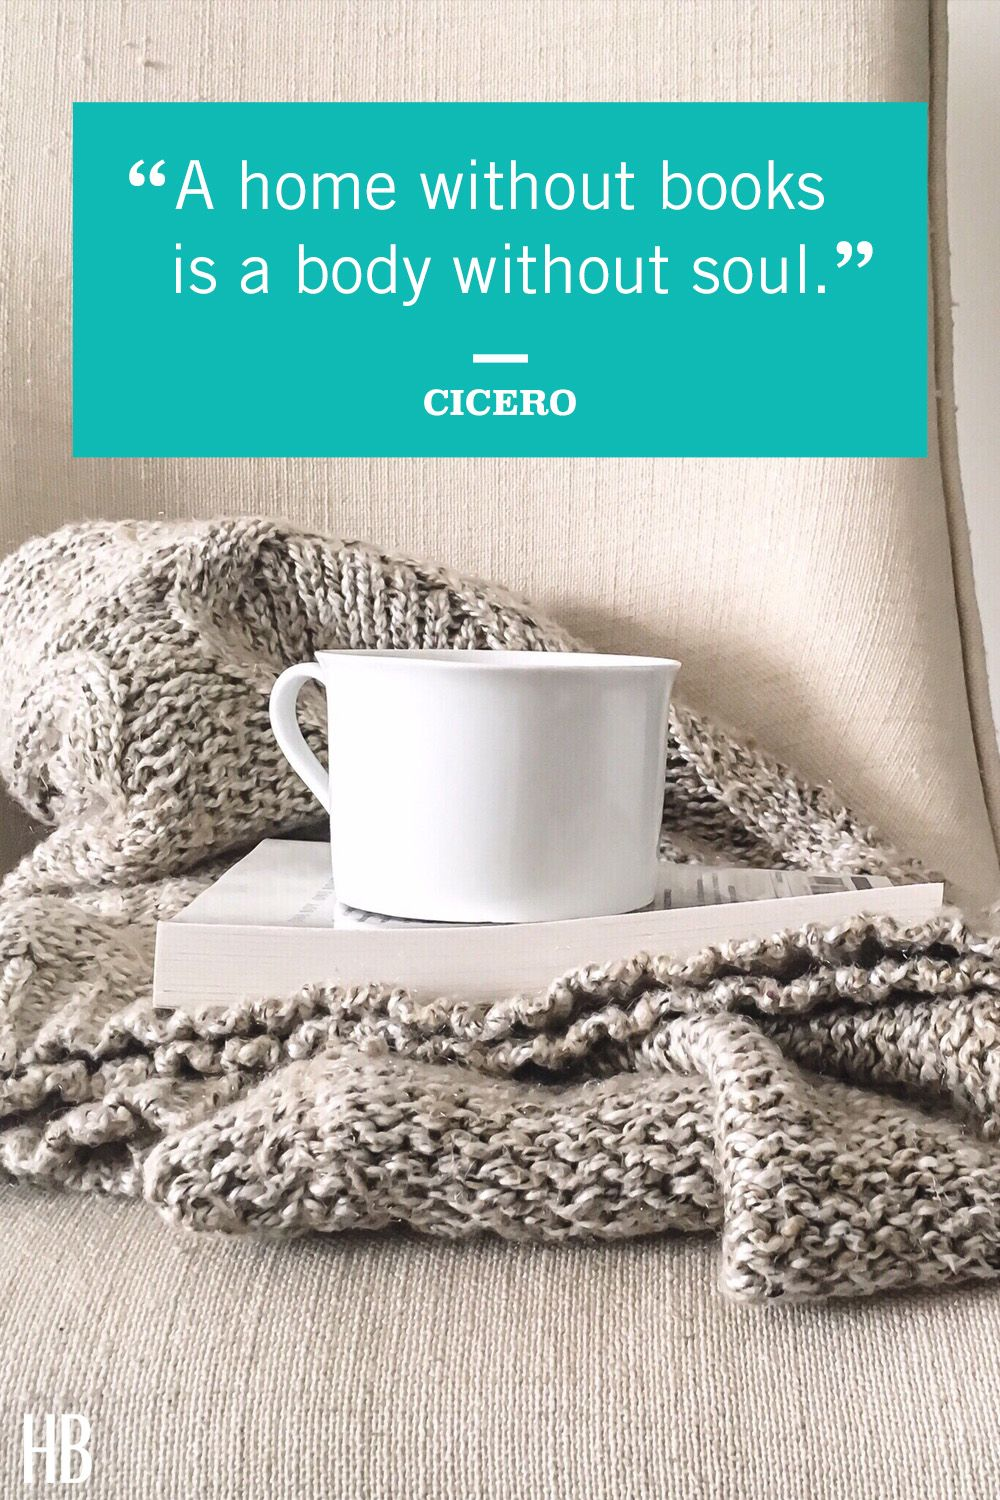 cicero​​ home quote